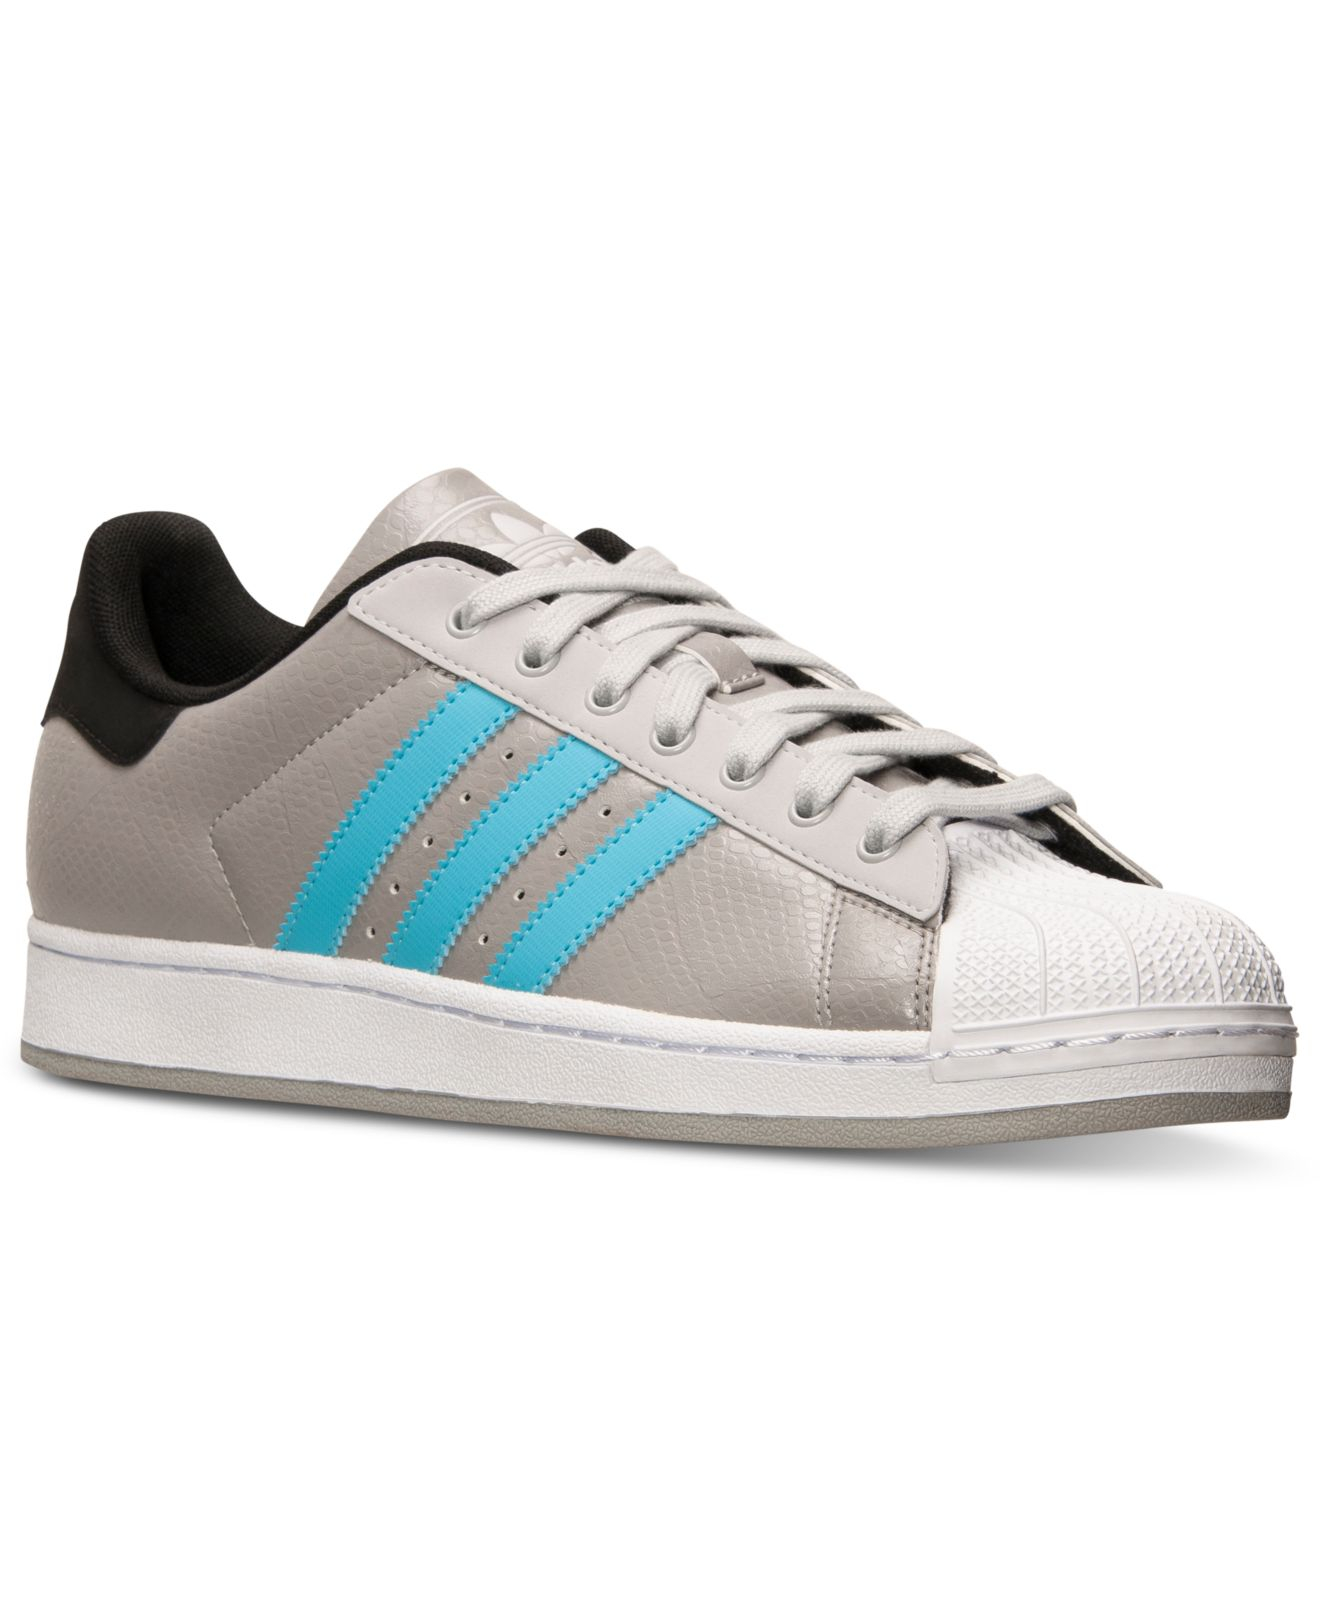 lyst adidas men 39 s superstar 2 casual sneakers from finish line in blue for men. Black Bedroom Furniture Sets. Home Design Ideas